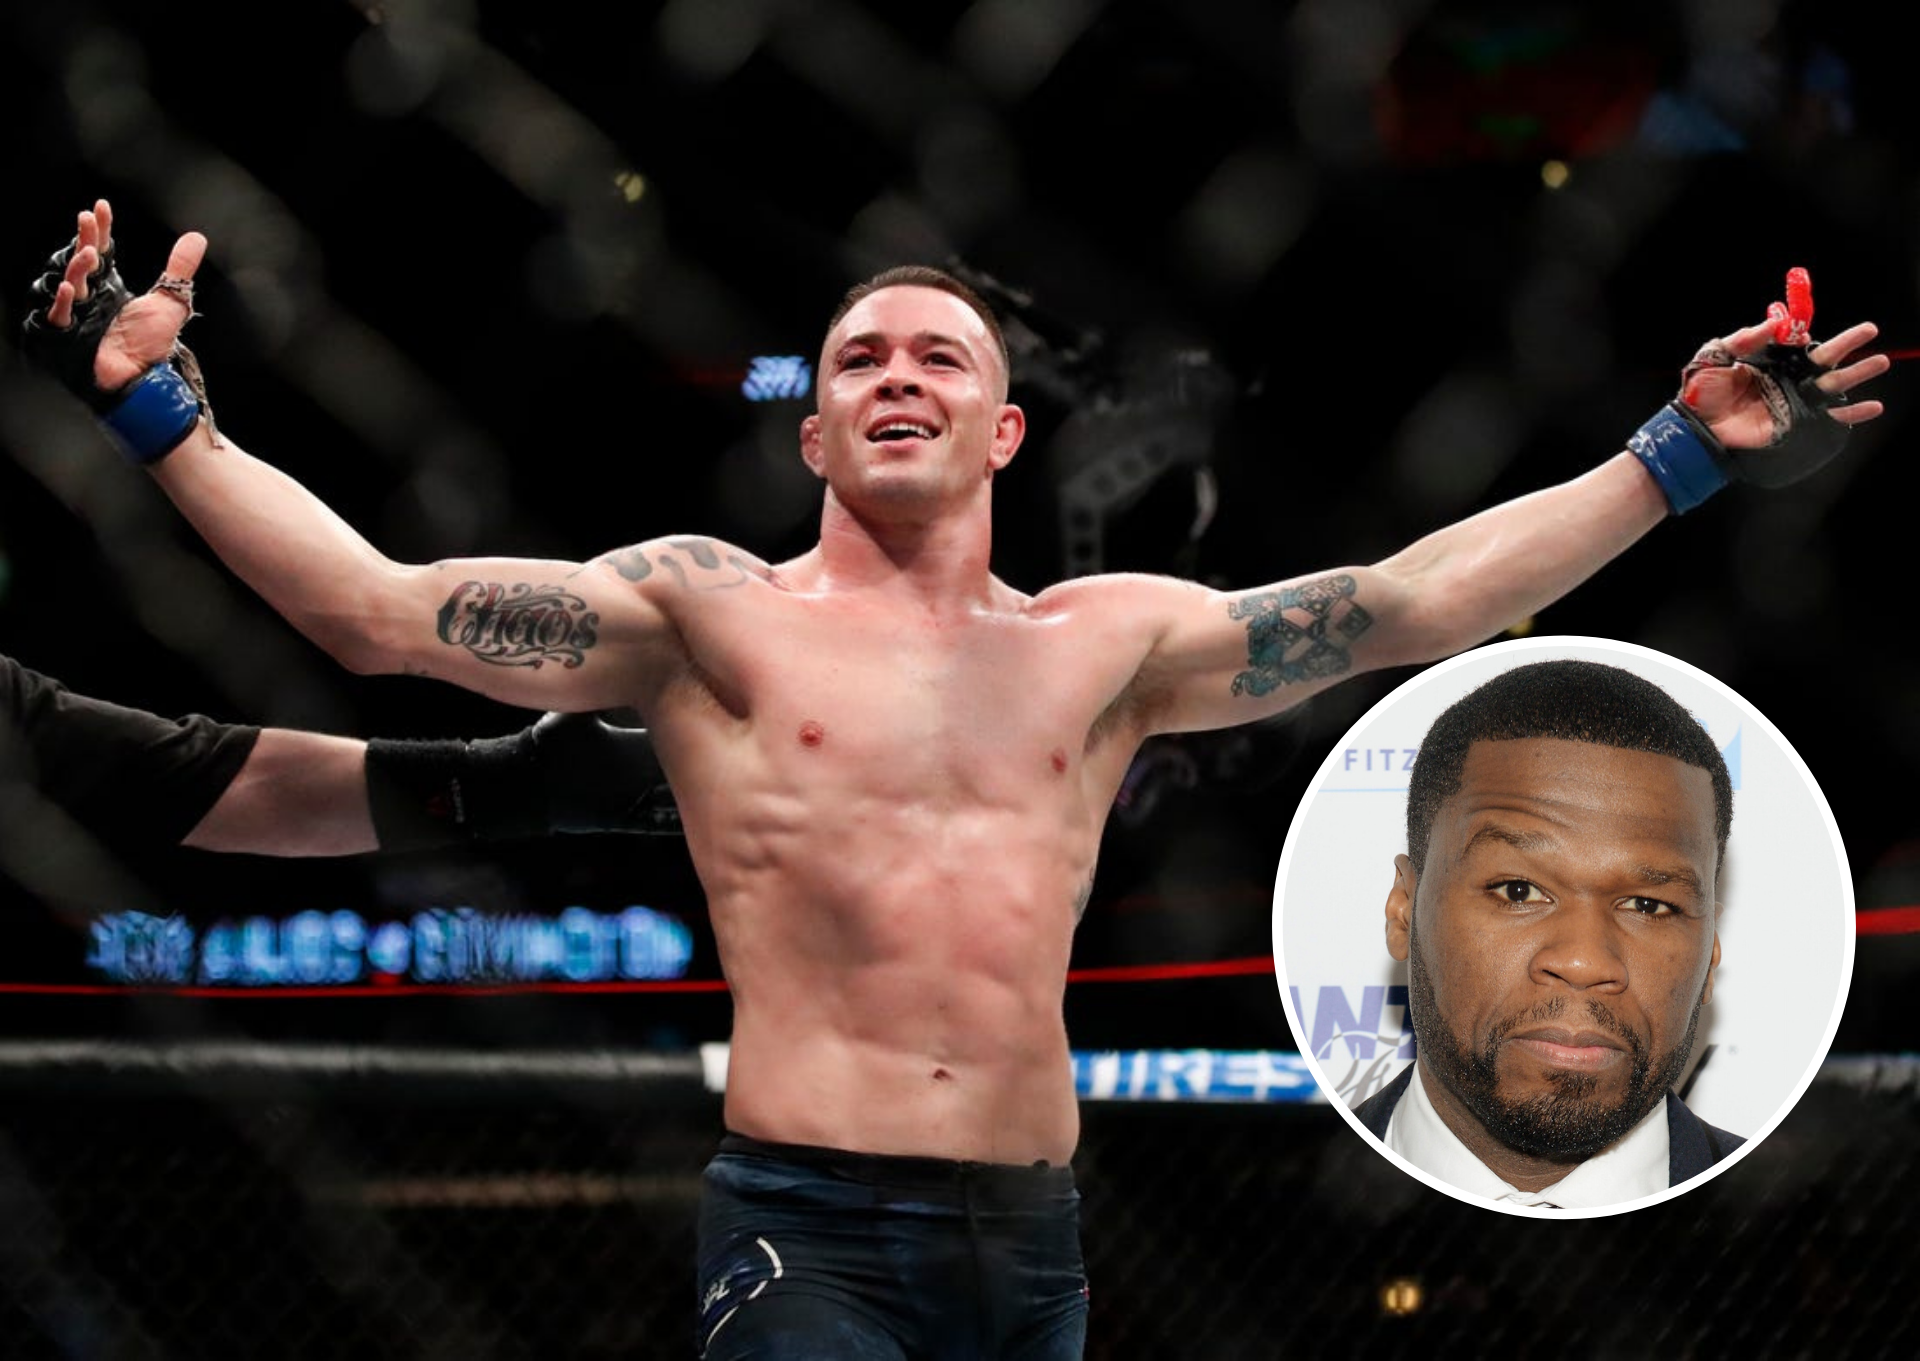 Colby Covington calls out 'little b**tch' 50 cent to a fight after UFC 245 comments - 50 cent